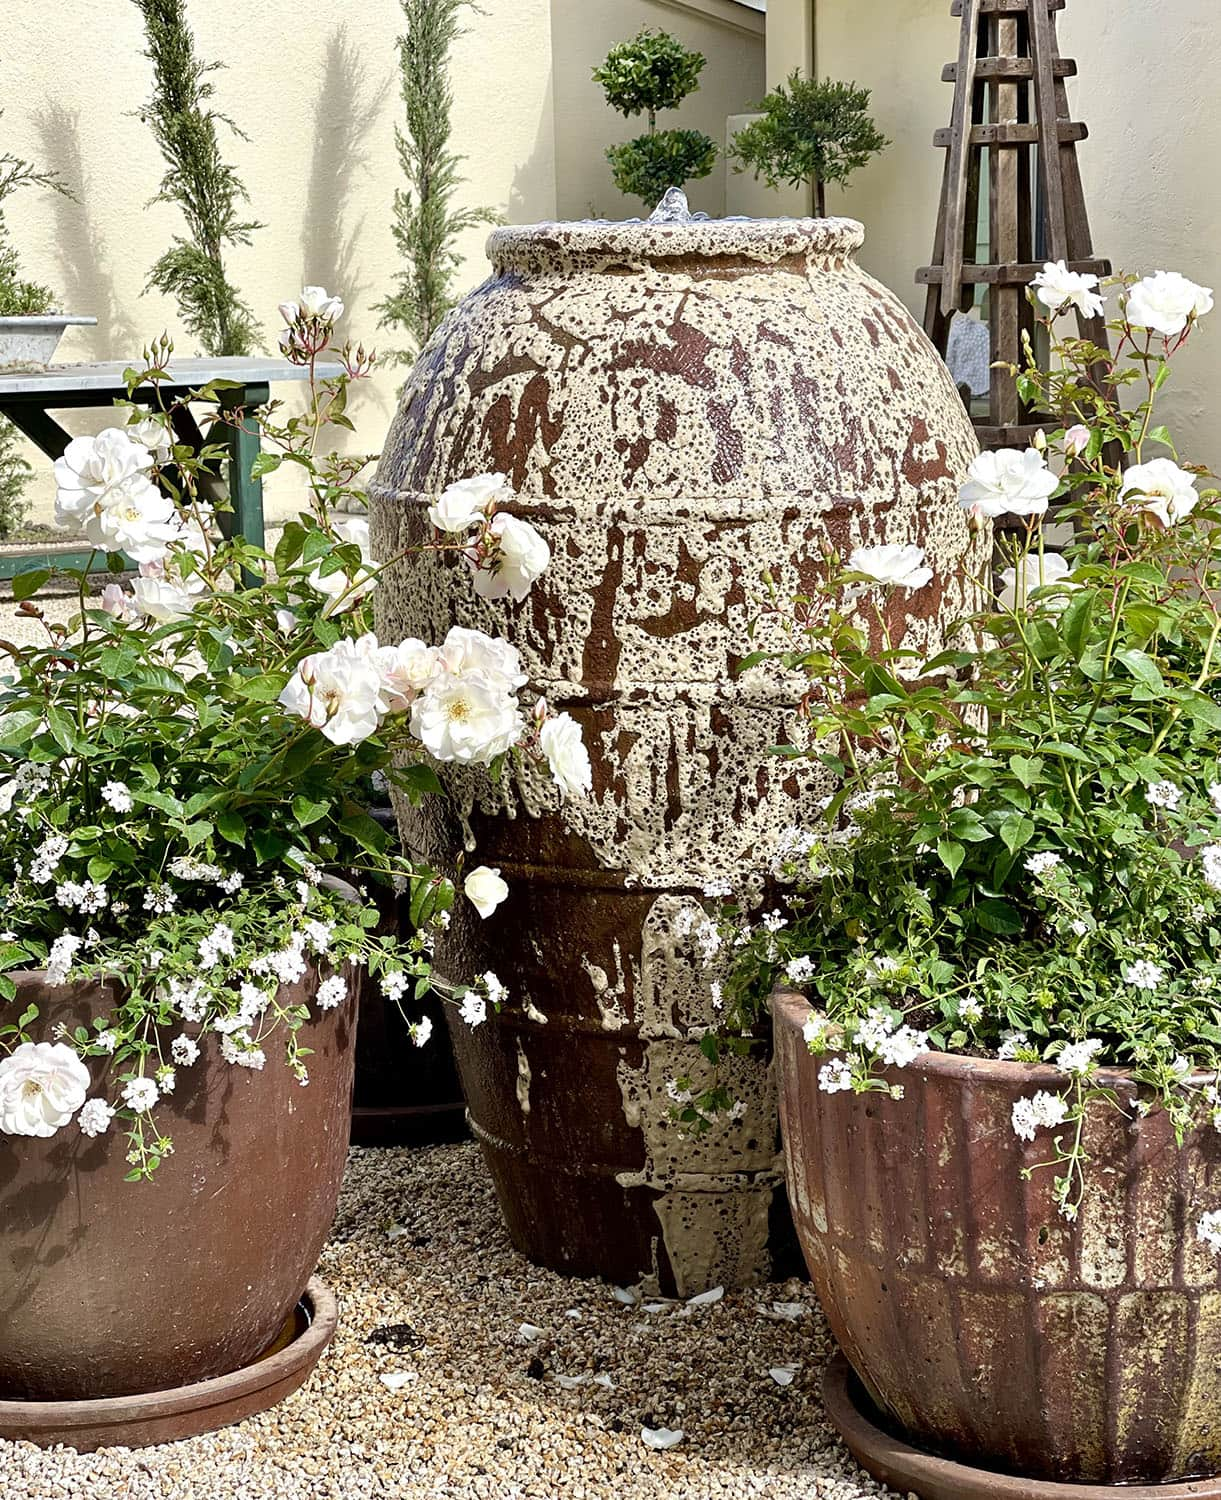 cindy hattersley's fountain